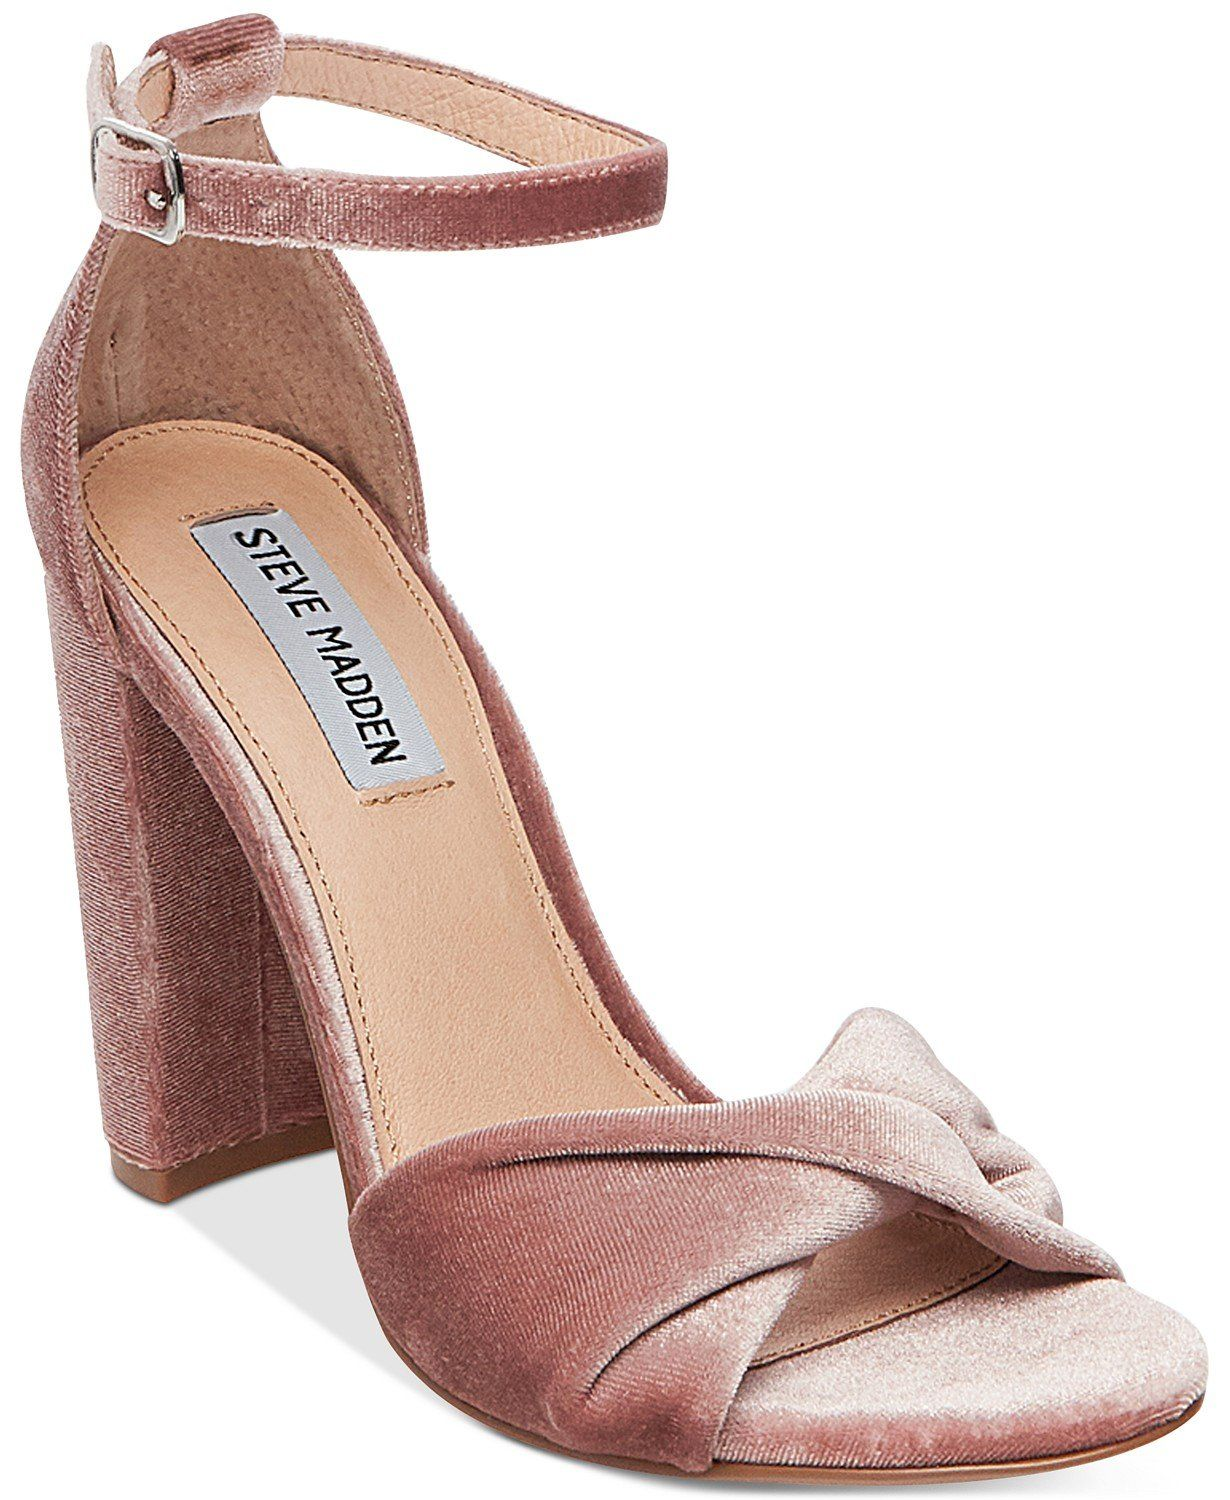 255f5b1c634 Steve Madden Womens Clever Block-Heel Sandals (Blush Velvet, 11) in ...